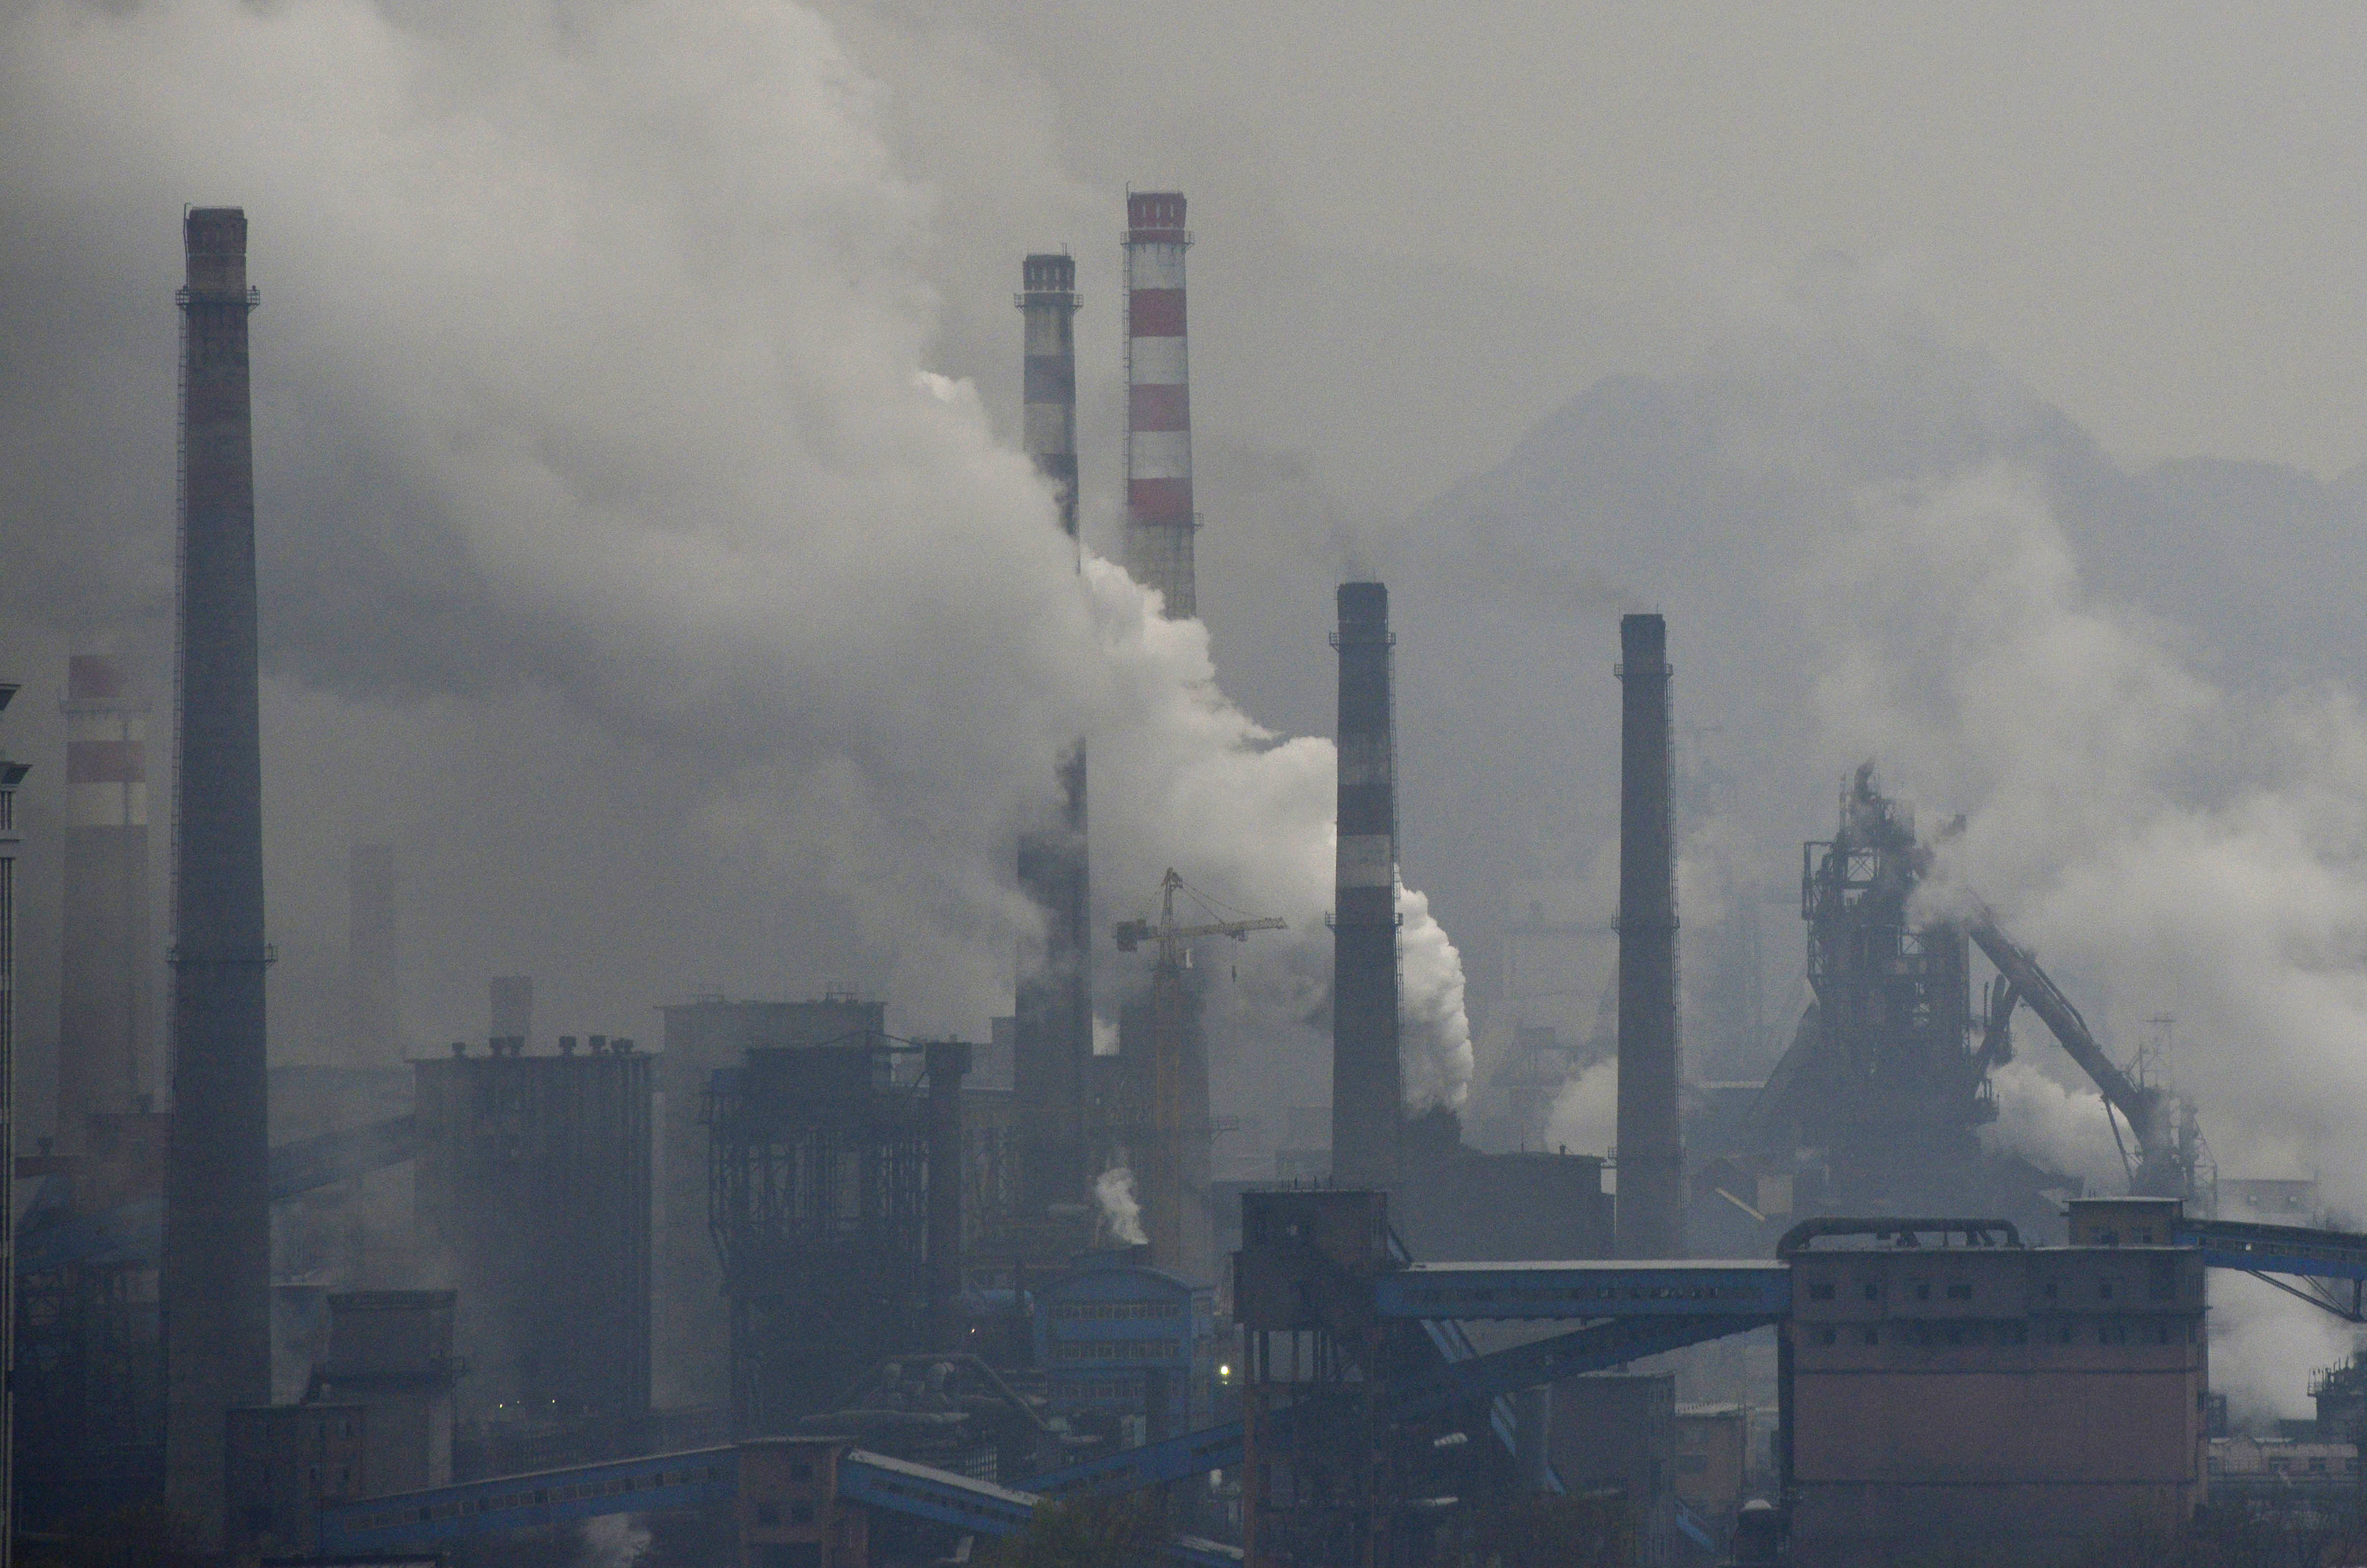 Smoke rises from chimneys and facilities of steel plants on a hazy day in Benxi, Liaoning province November 3, 2013. A chronic shortage of natural gas is hurting China's plan to move away from burning coal to heat homes and offices, raising the prospect of more choking air pollution this winter and beyond. The problem is worst in northern China, where air pollution mainly caused by decades of reliance on coal has lowered life expectancy by an estimated 5.5 years compared to the south, Chinese and international researchers said in July. Picture taken November 3, 2013. REUTERS/Stringer (CHINA - Tags: ENVIRONMENT ENERGY) CHINA OUT. NO COMMERCIAL OR EDITORIAL SALES IN CHINA - GM1E9B40RS301